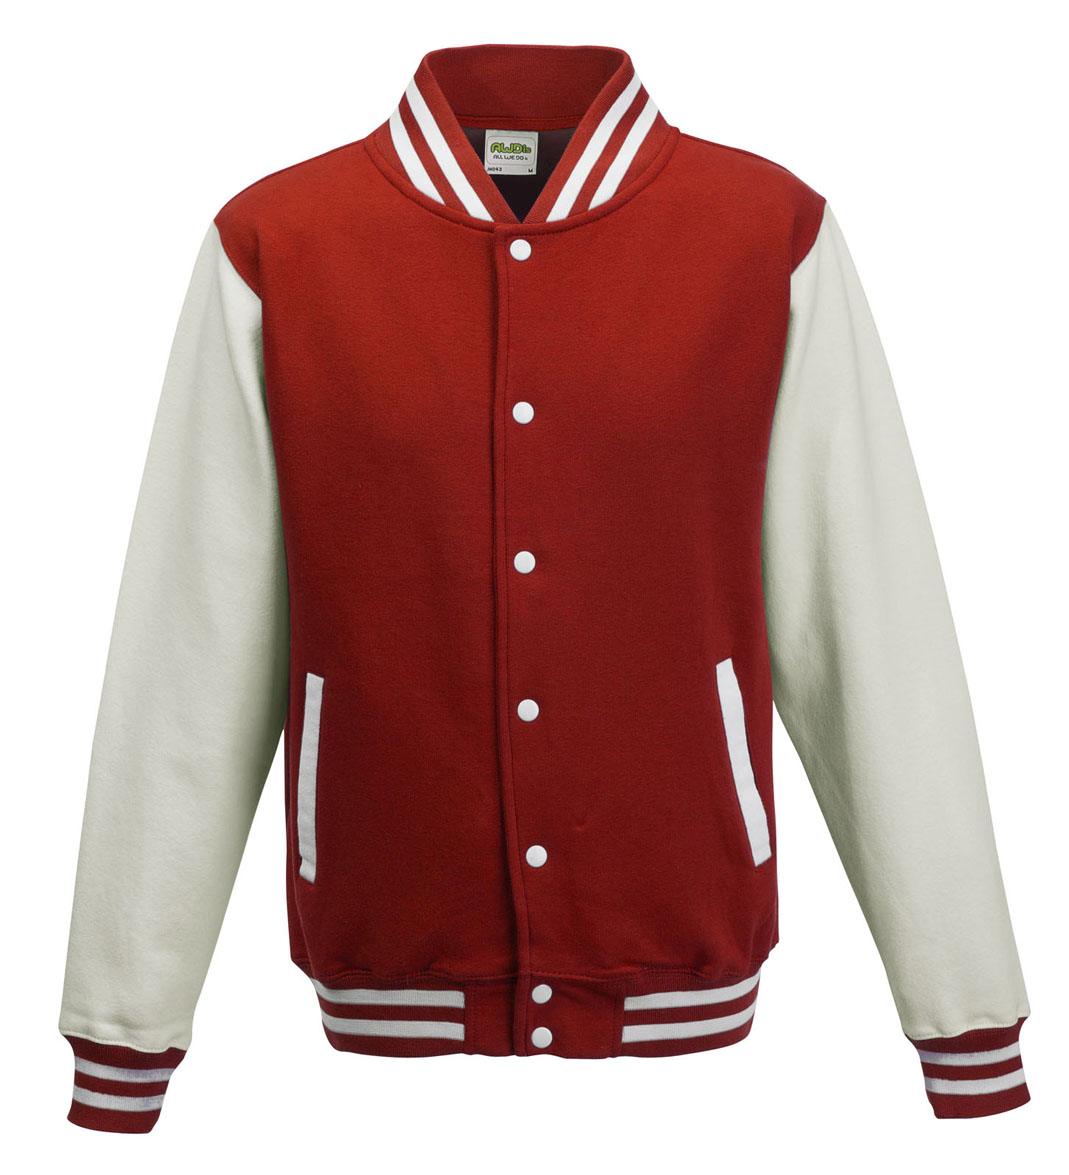 JH043 Fire Red - White